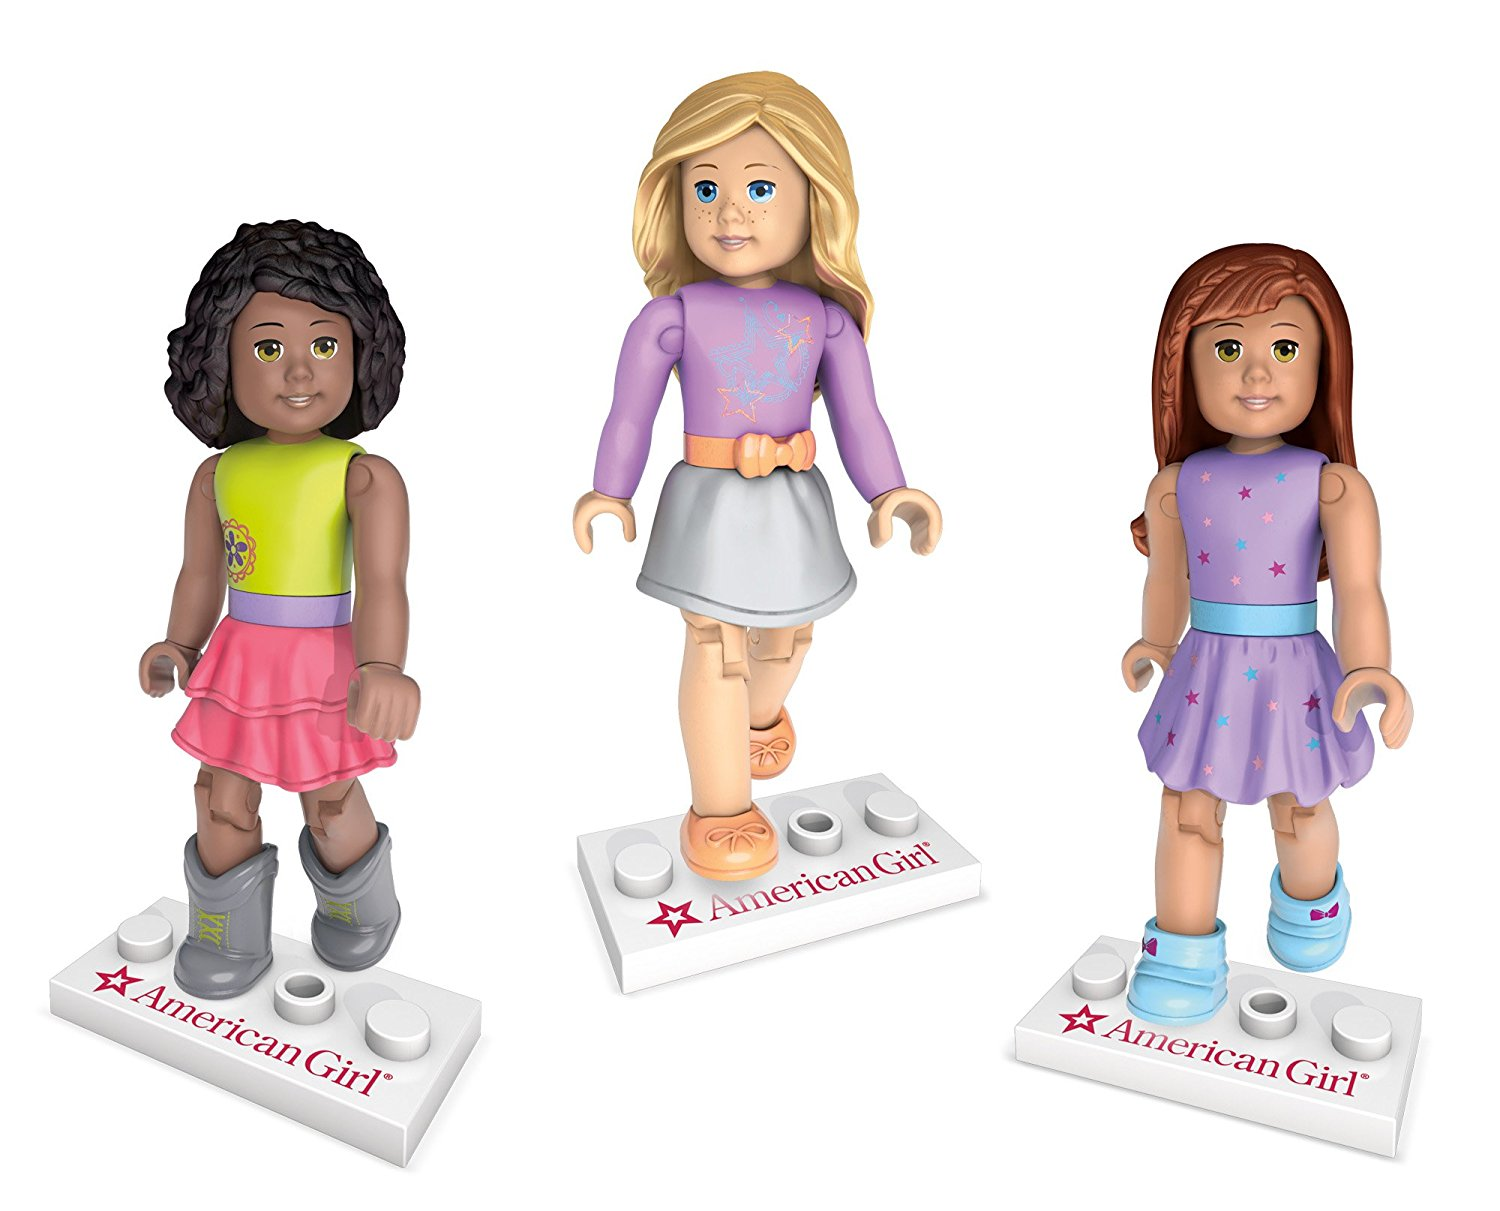 Mega Construx American Girl Figurine Downtown Style Collection, Create a diverse world to... by